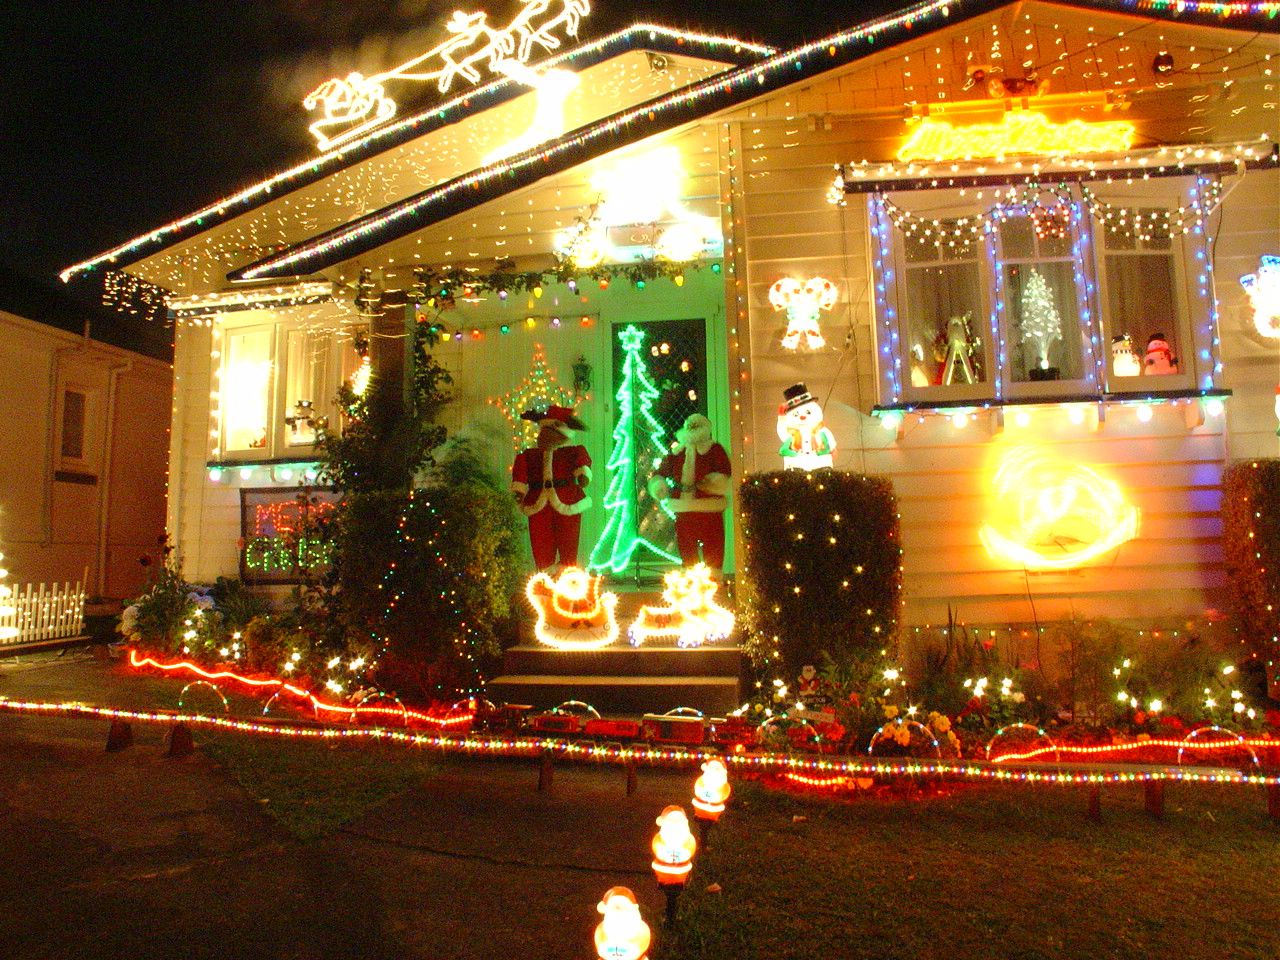 Christmas lights at Franklin Road, Auckland, New Zealand